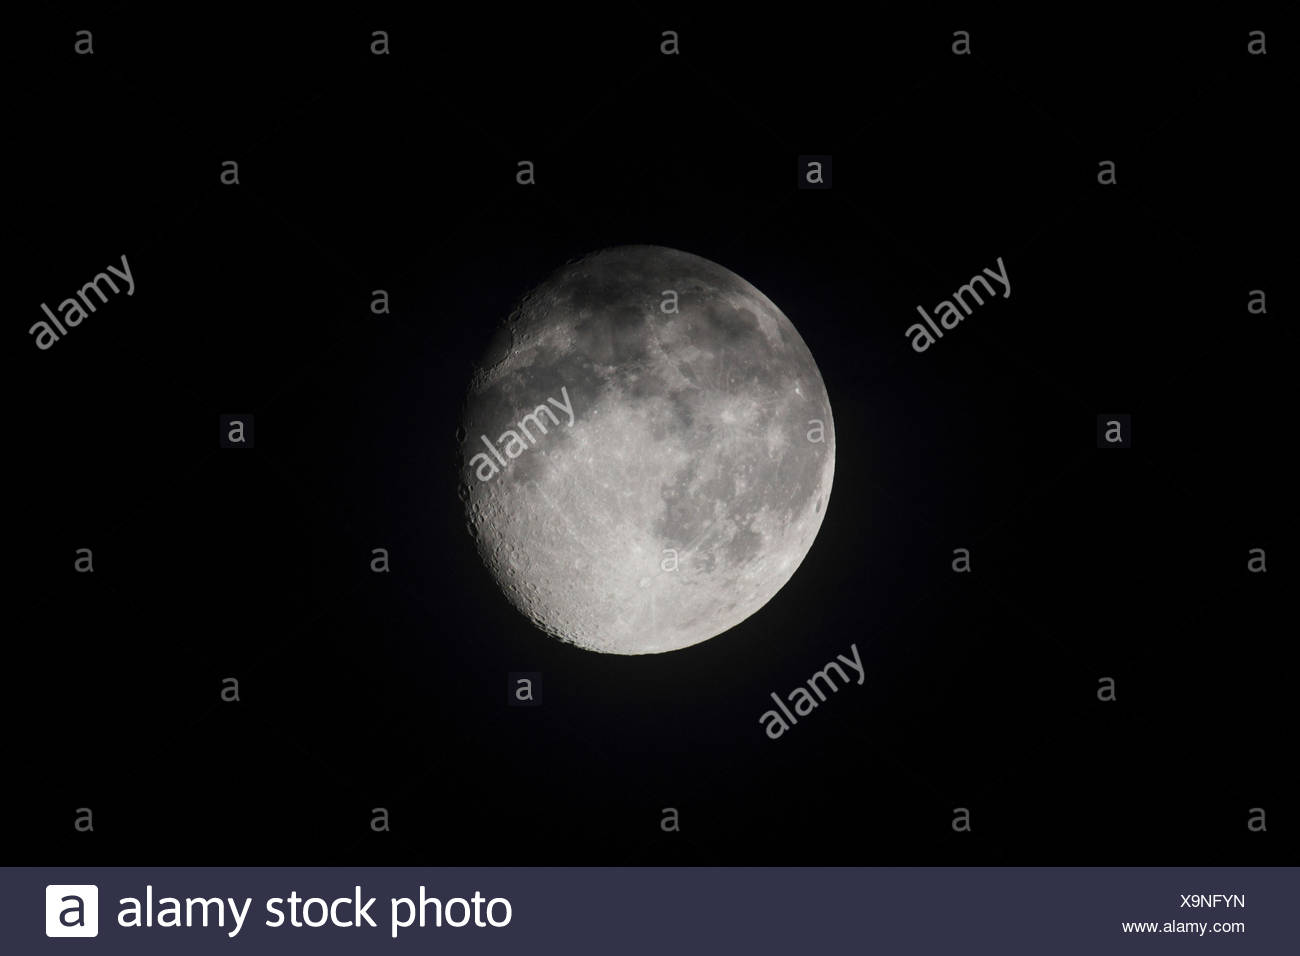 Waning moon, - Stock Image